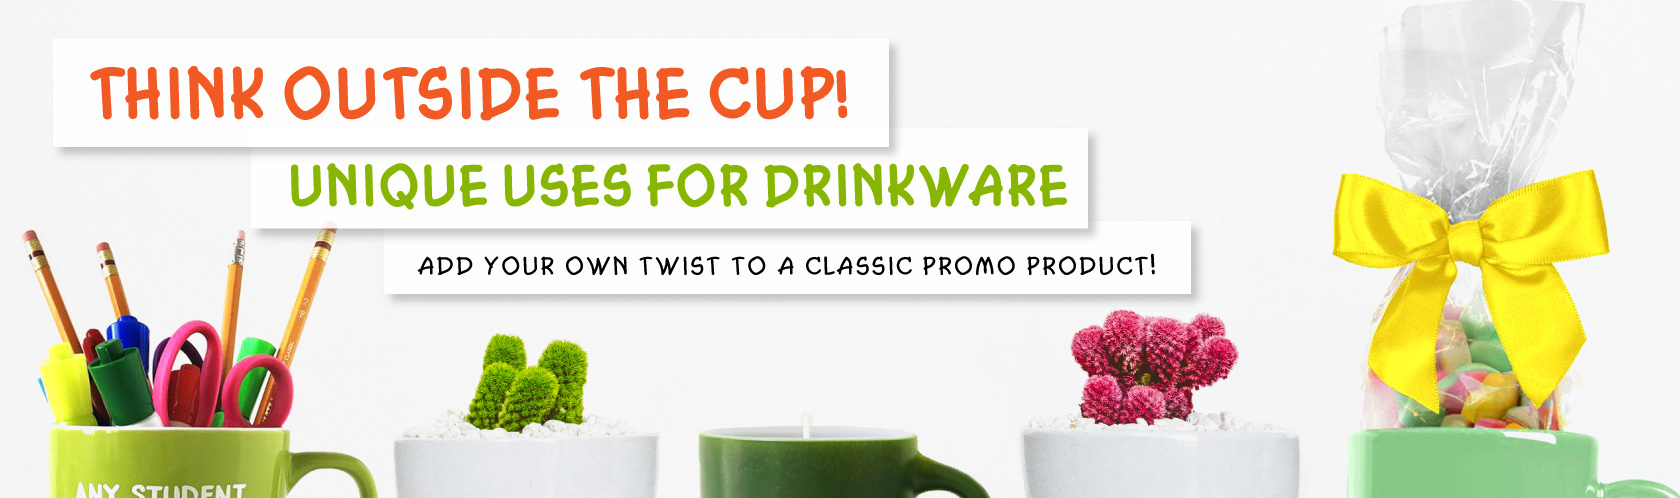 Think Outside the Cup! Unique Uses for Drinkware